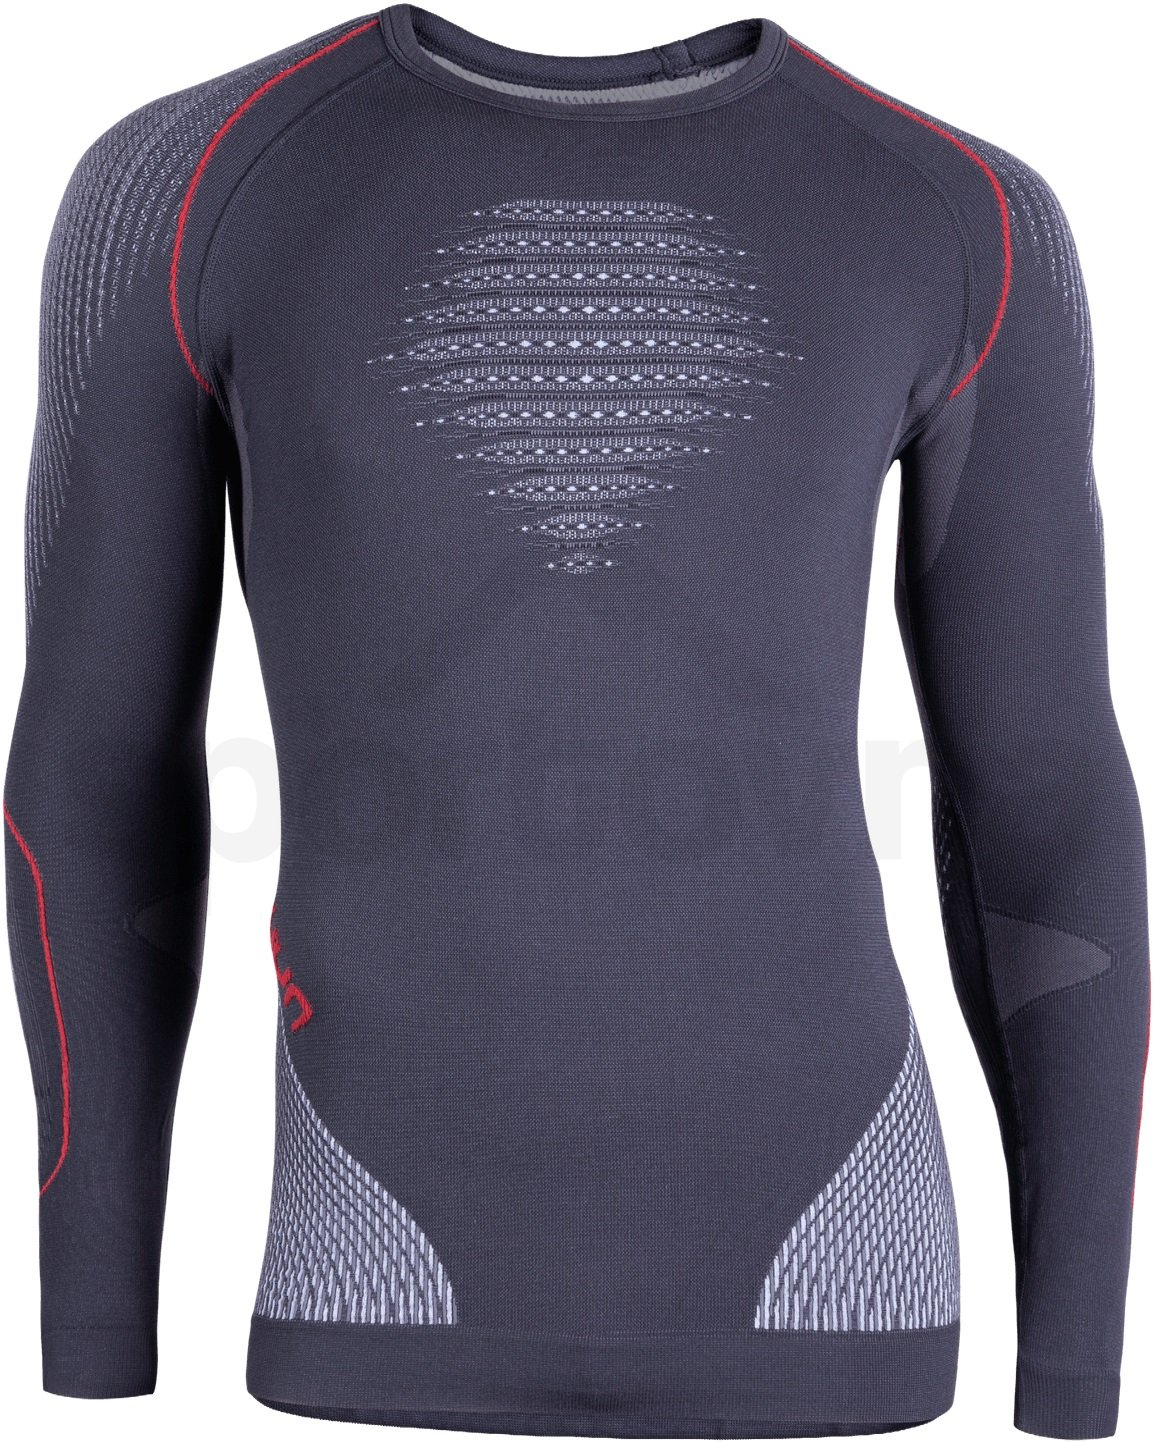 u100006_g974_front.png_4